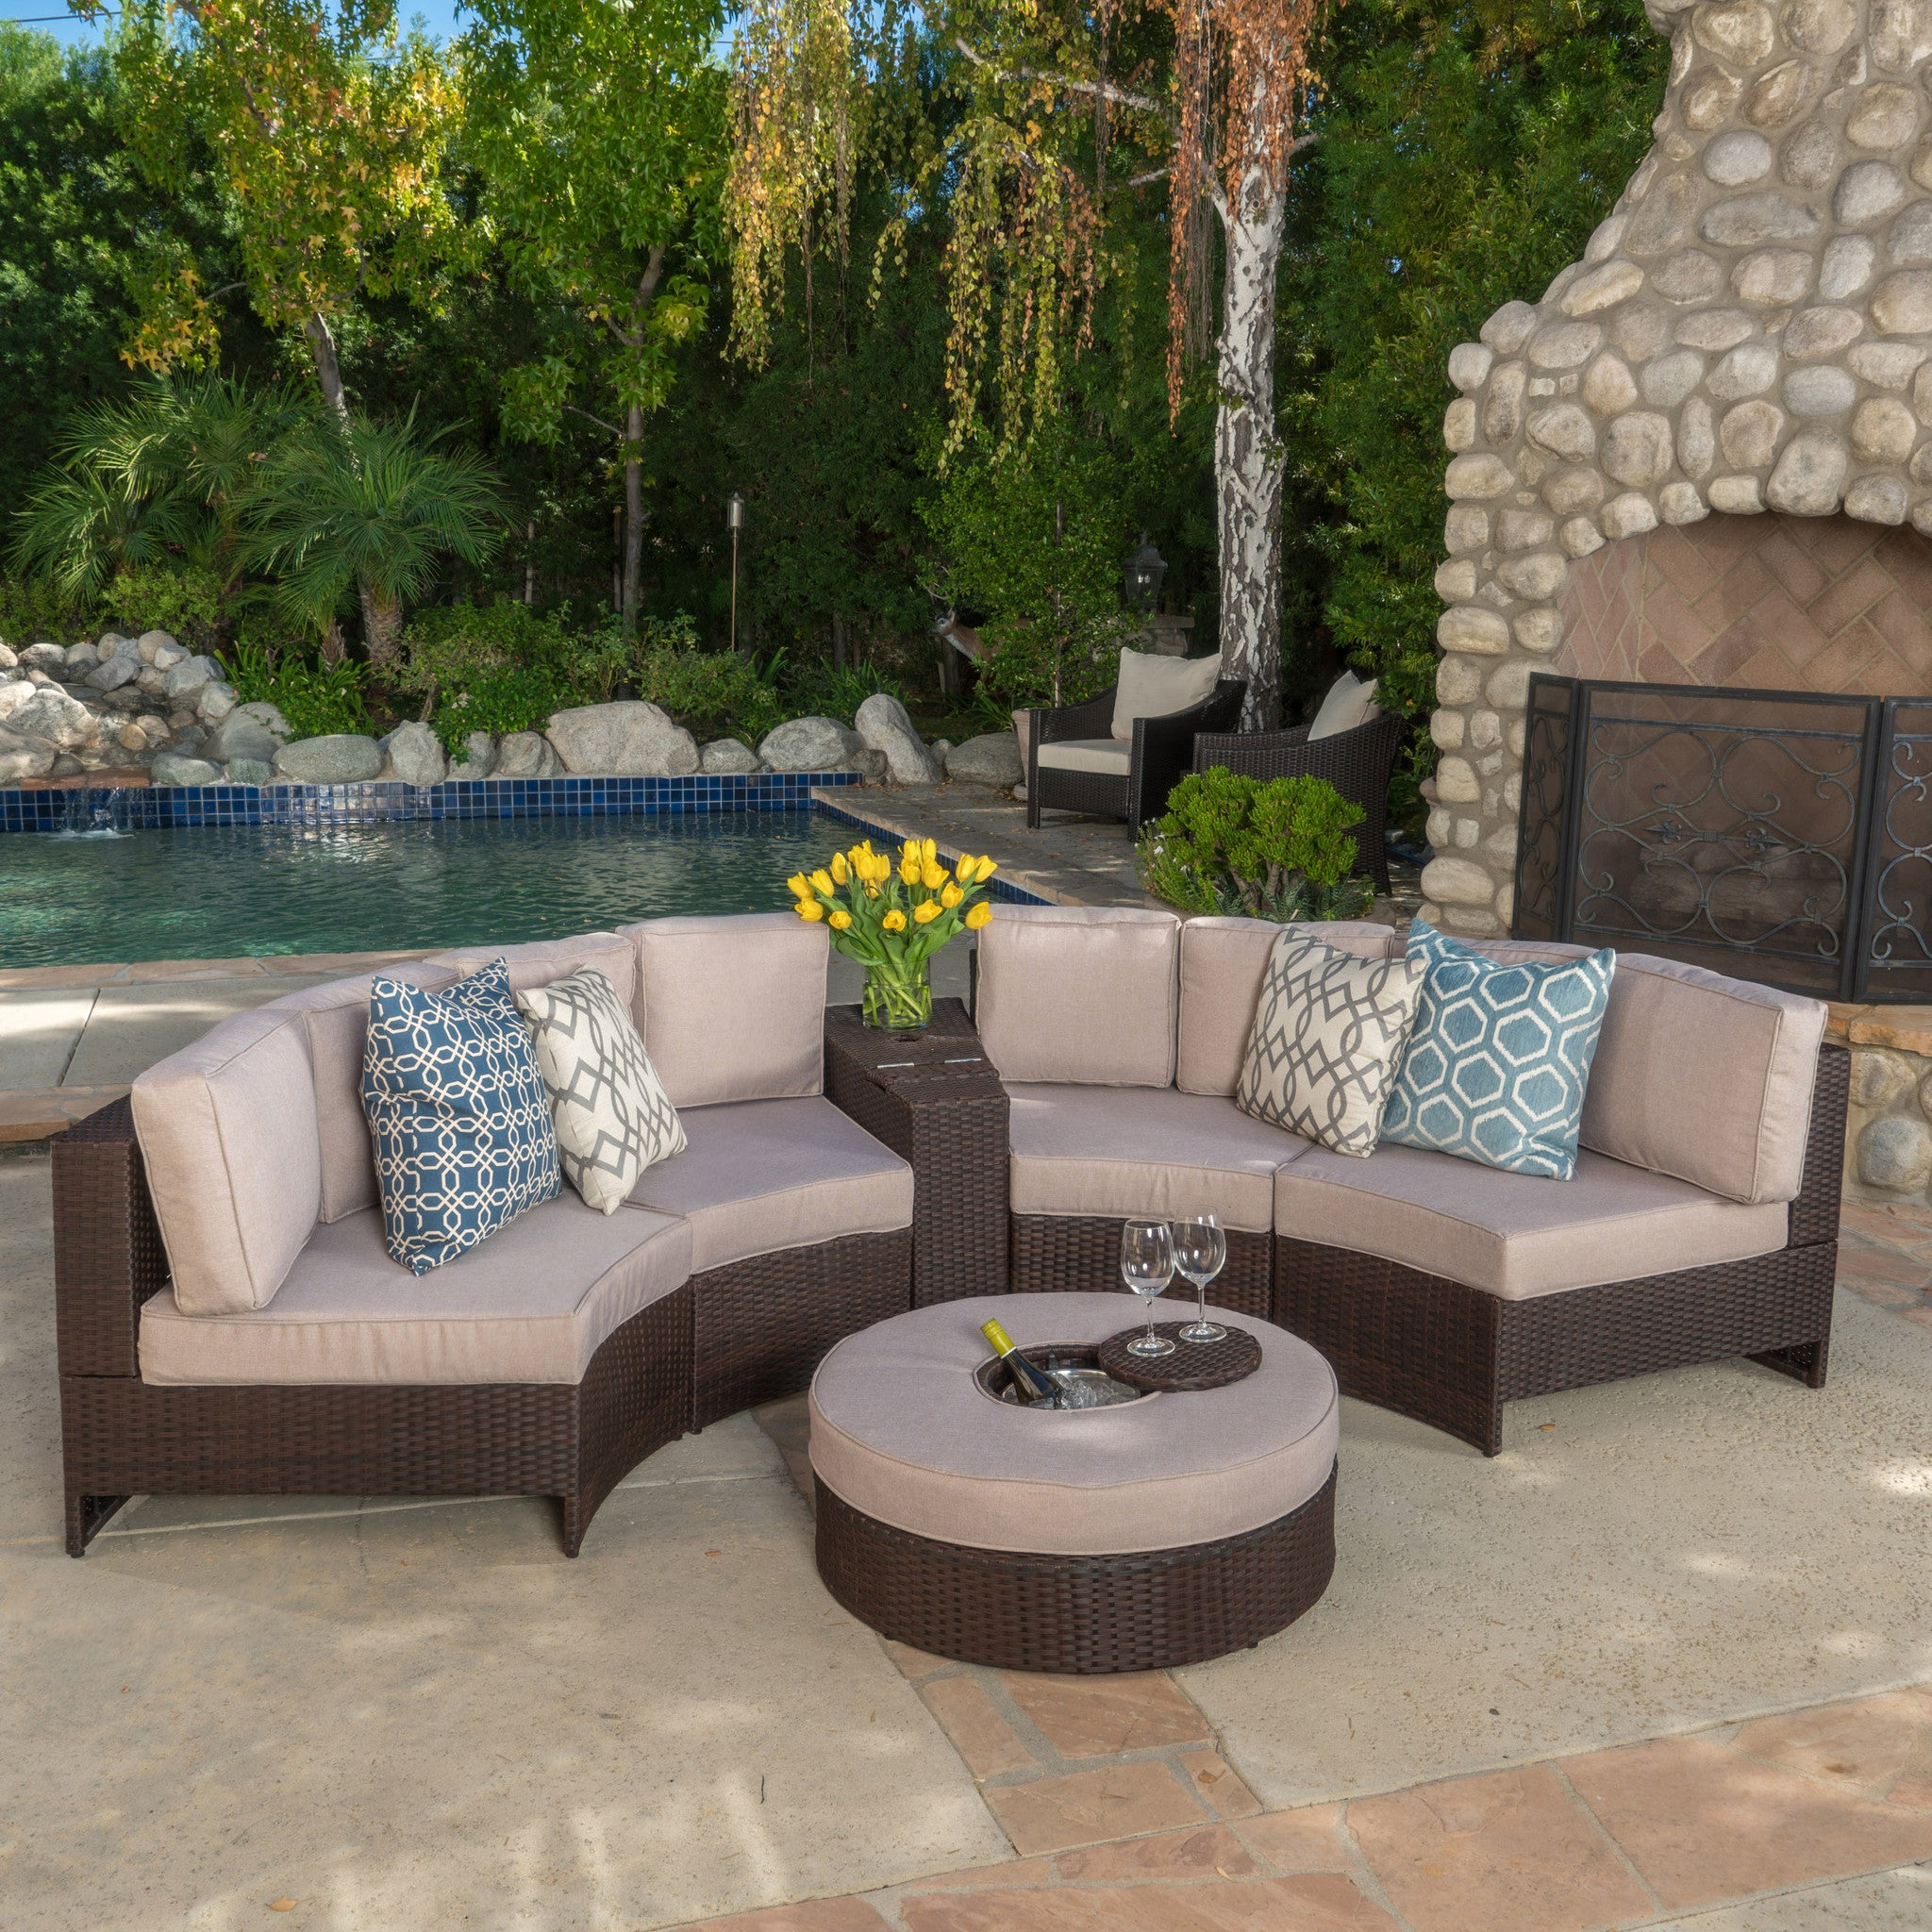 Outdoor Sectional Sofa Set Storage Trunk Ice Bucket foto